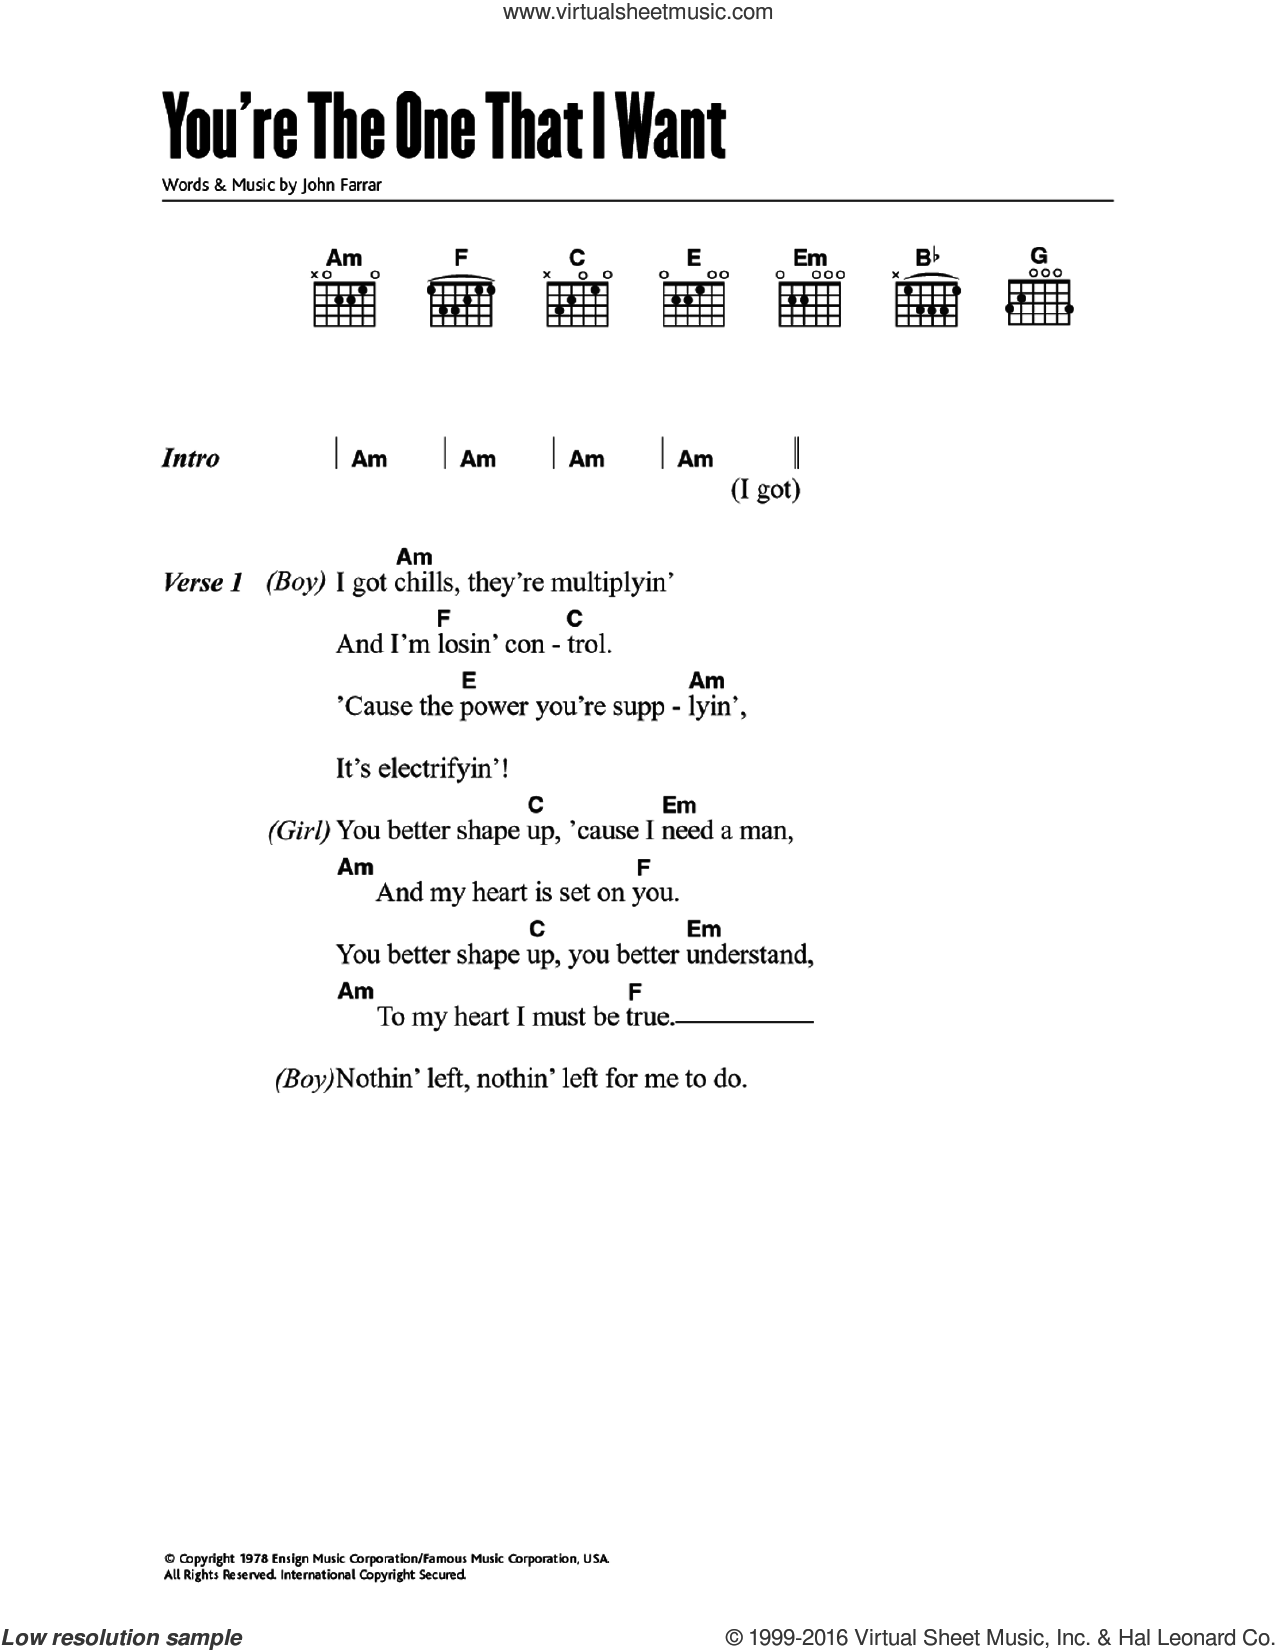 You're The One That I Want (from Grease) sheet music for guitar (chords) by John Travolta, Olivia Newton-John and John Farrar. Score Image Preview.